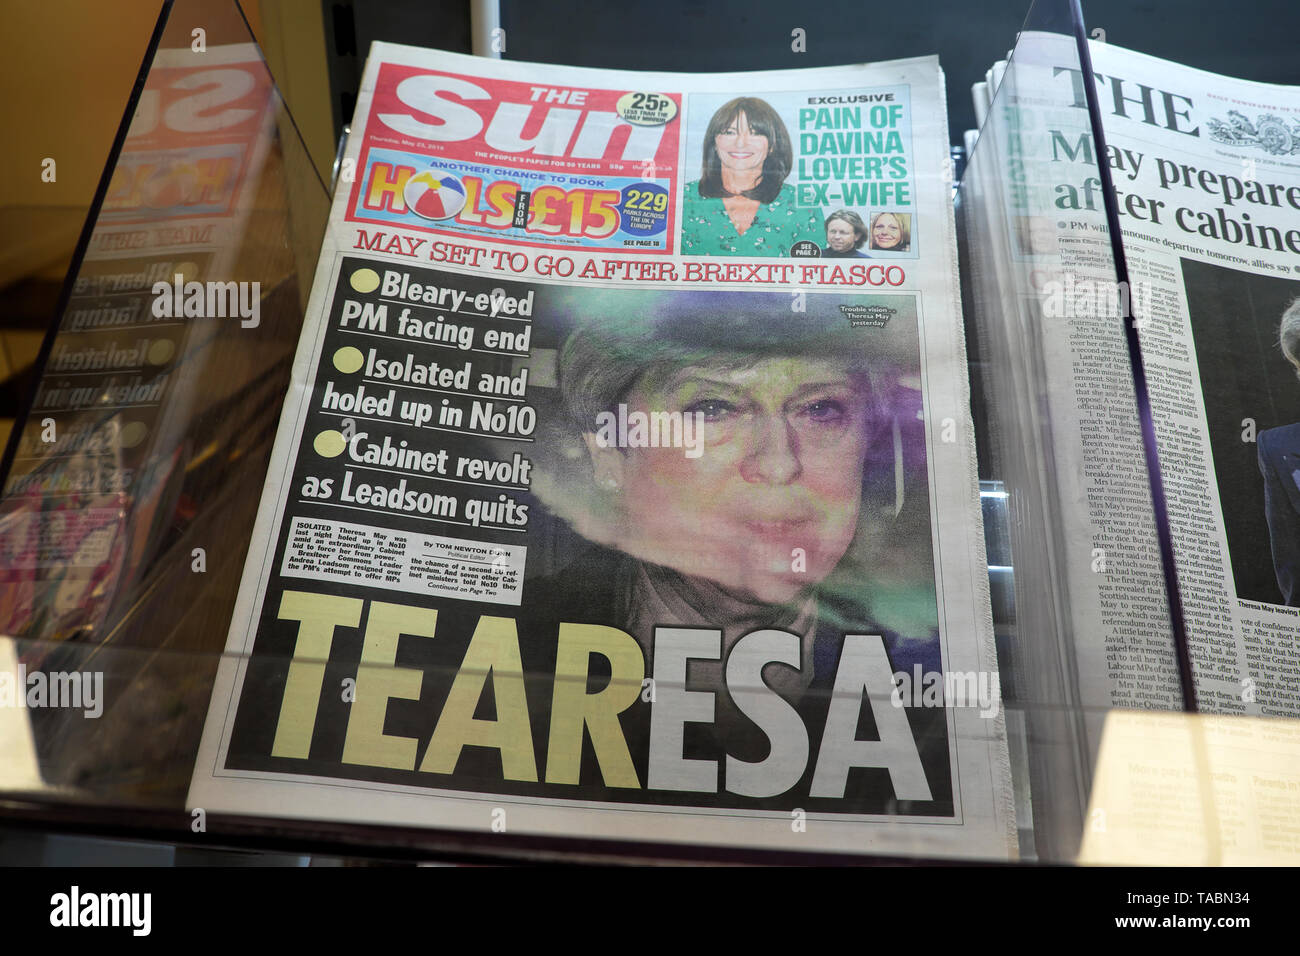 The Sun newspaper headline front page 'TEARESA May Set to Go After Brexit Fiasco'  and Cabinet revolt as Andrea Leadsom quits on  23 May 2019 in the buildup to a Conservative Tory leadership contest in Westminster London England UK - Stock Image